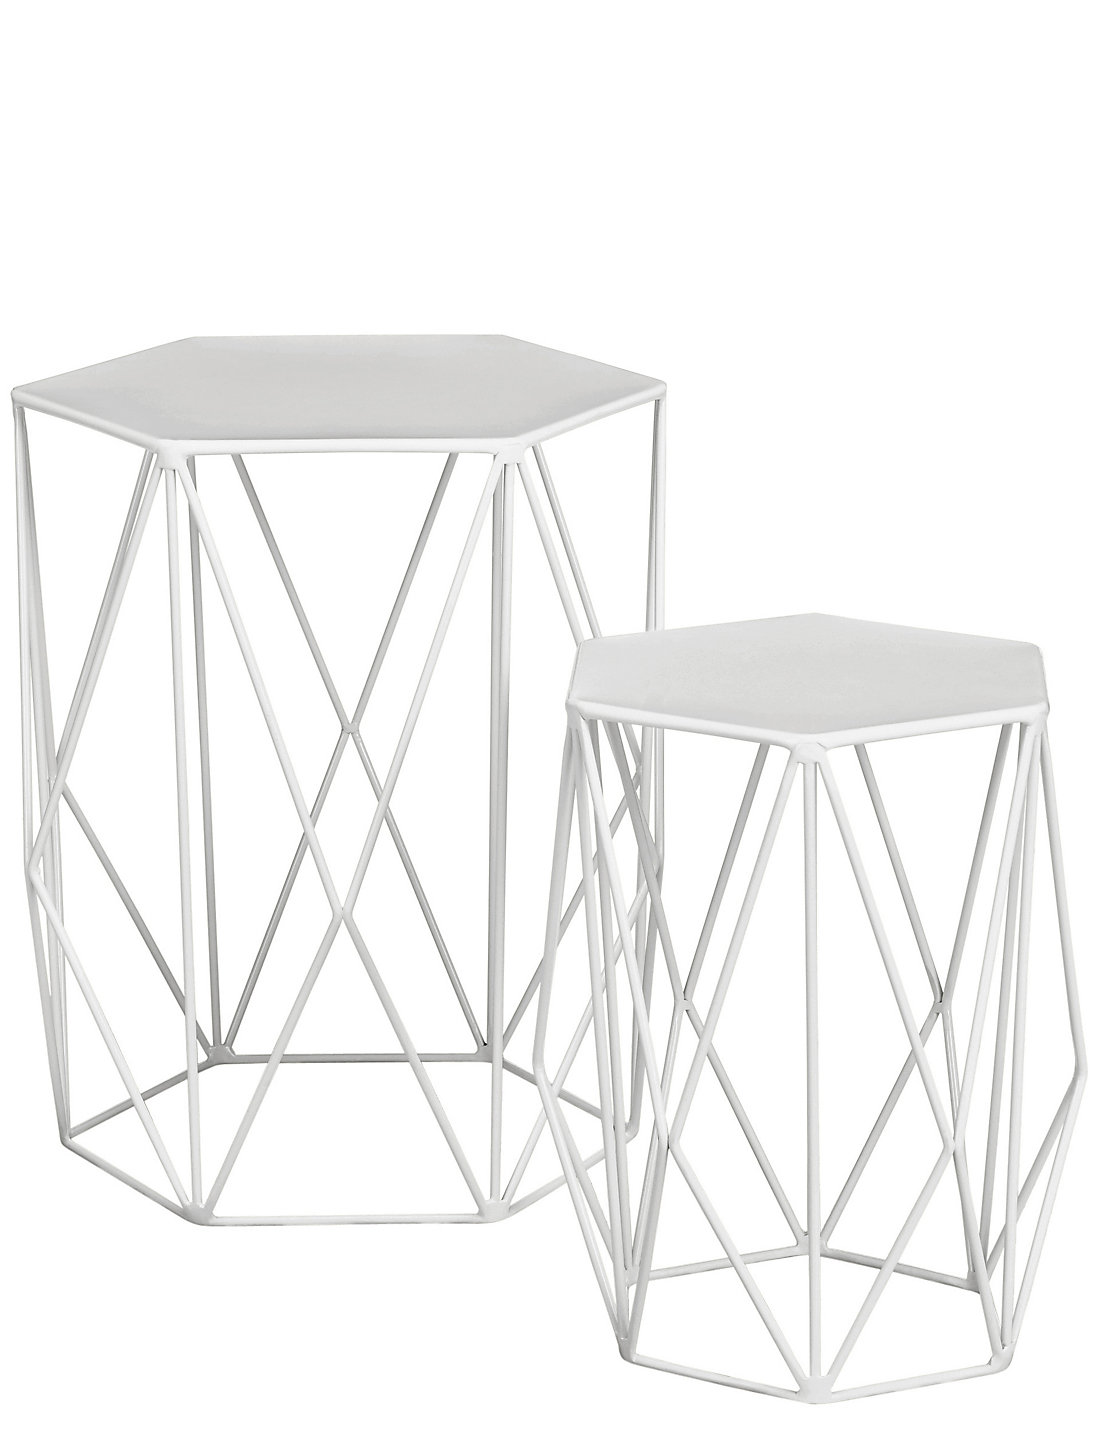 Wire tables living room furniture ms wire nest of tables white greentooth Images